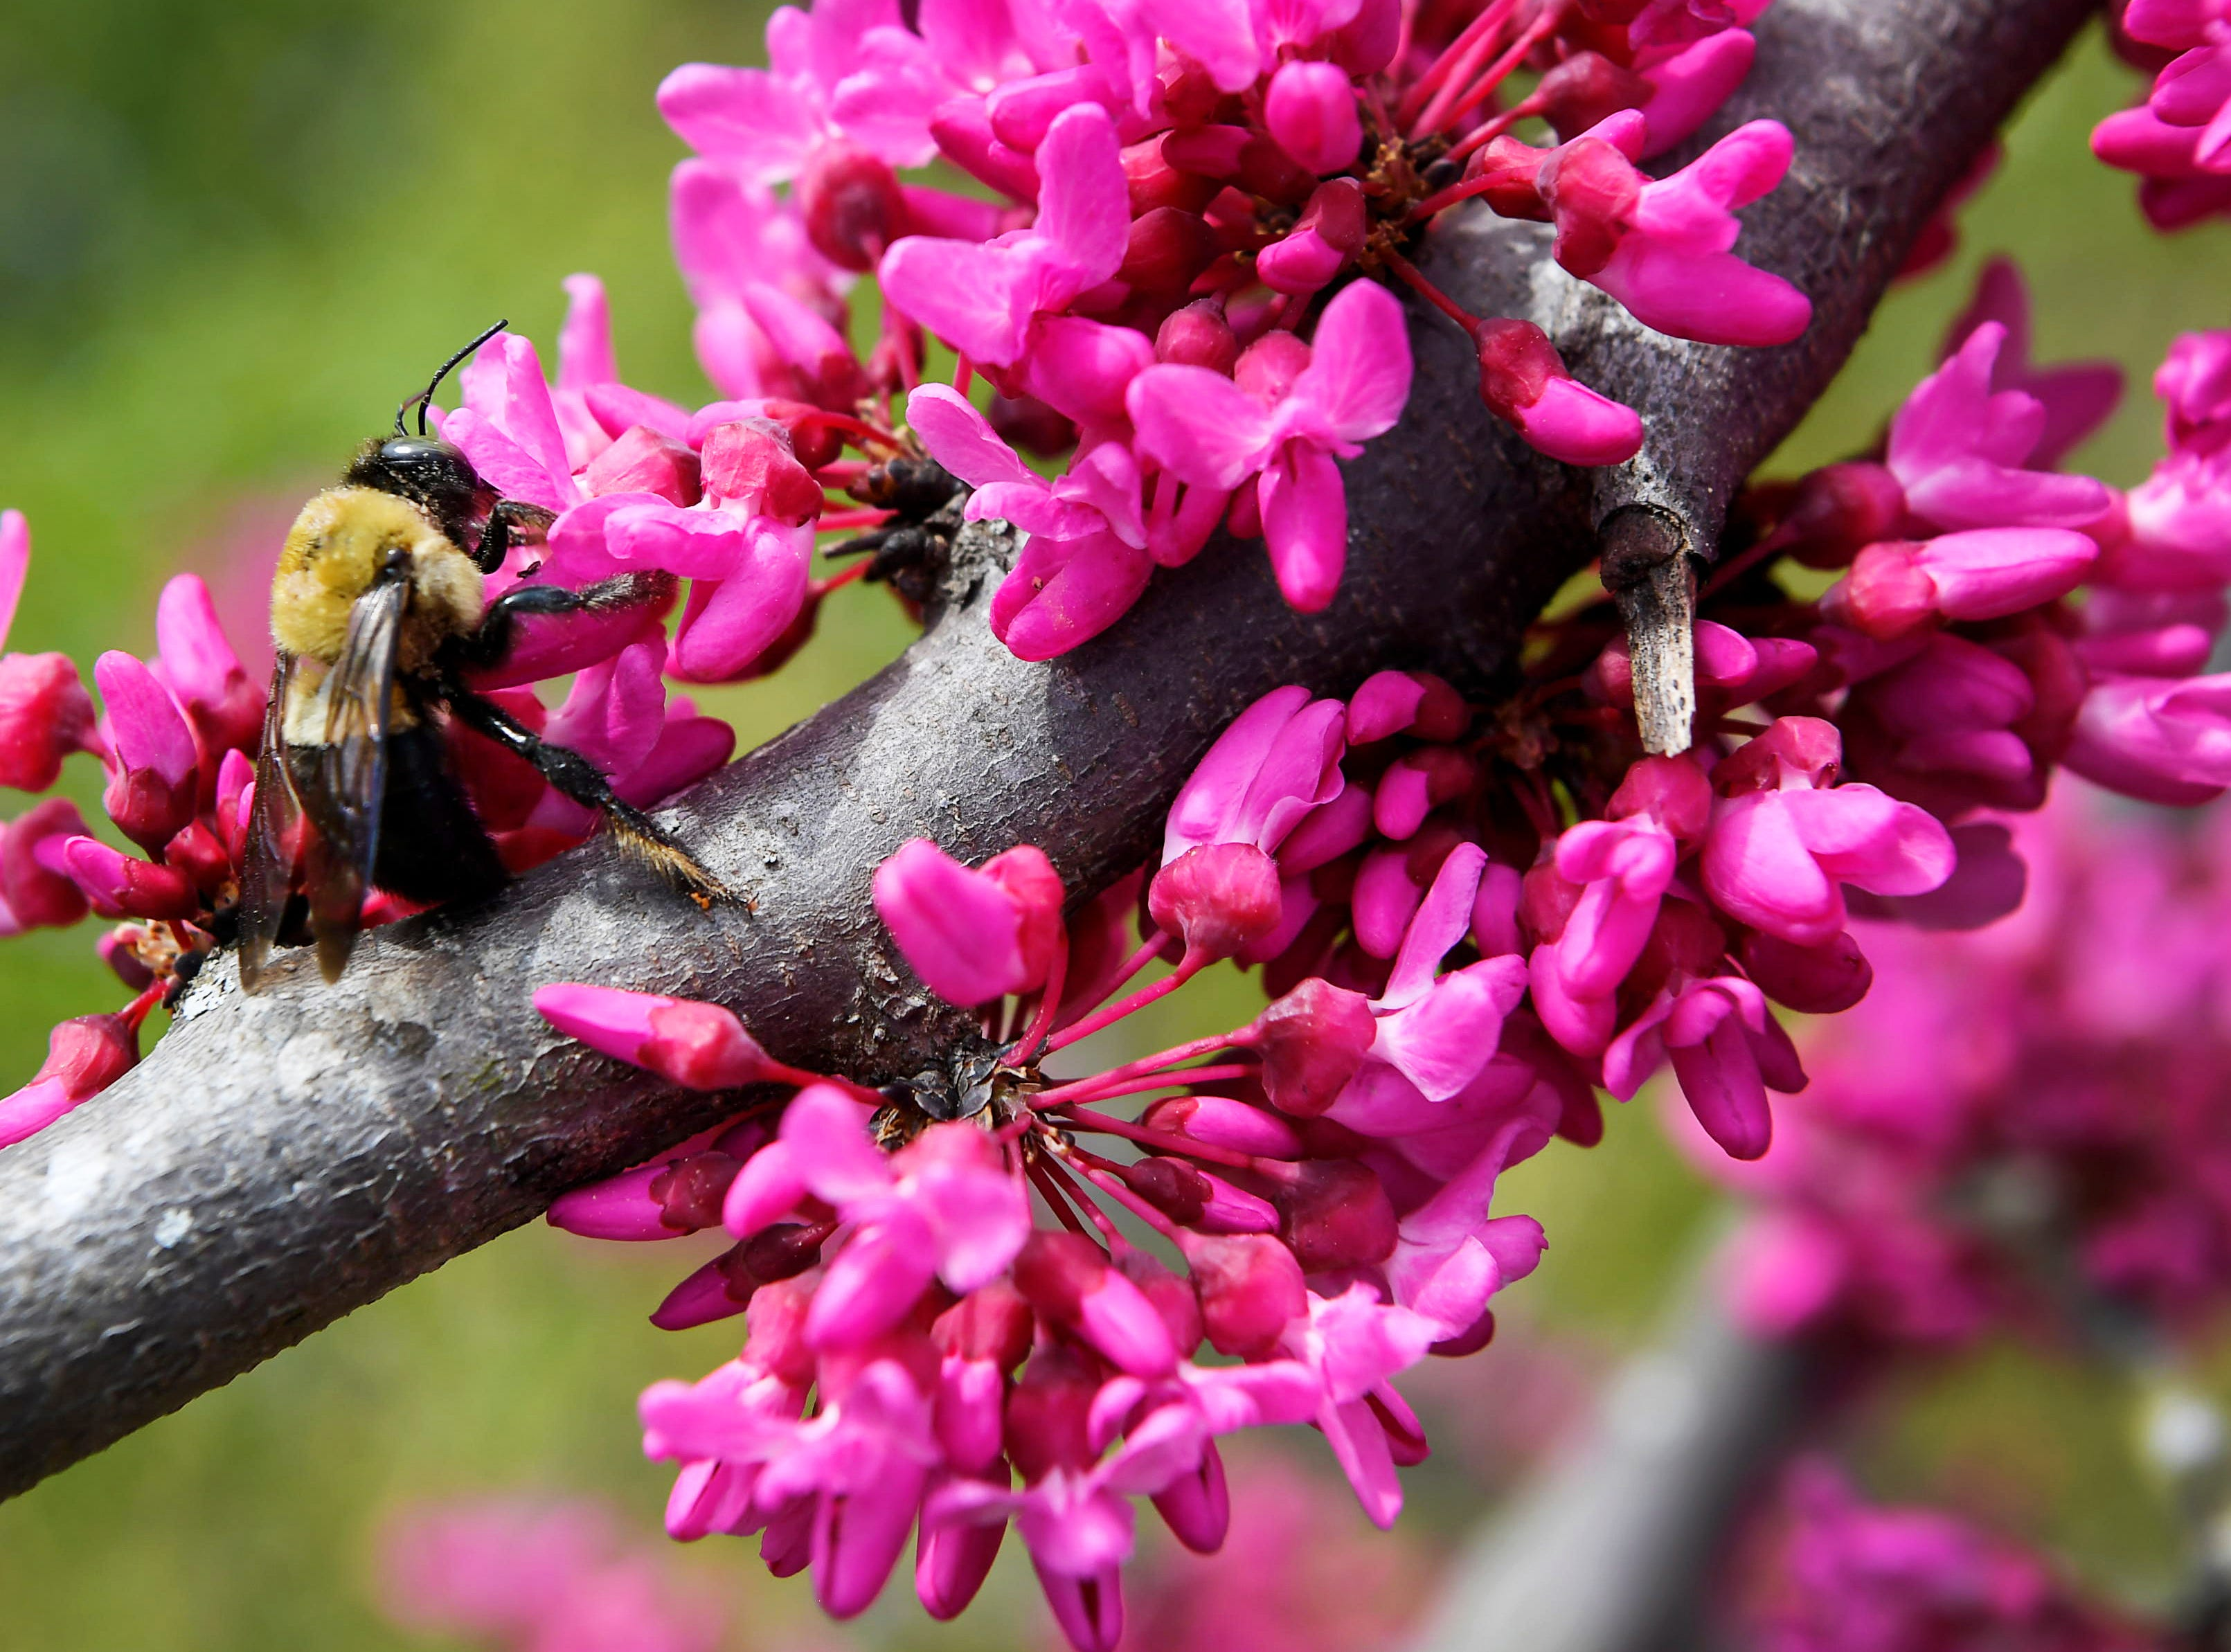 A bee collects pollen from a showy redbud tree at the Oconaluftee Visitor Center at Great Smoky Mountain National Park April 11, 2019.